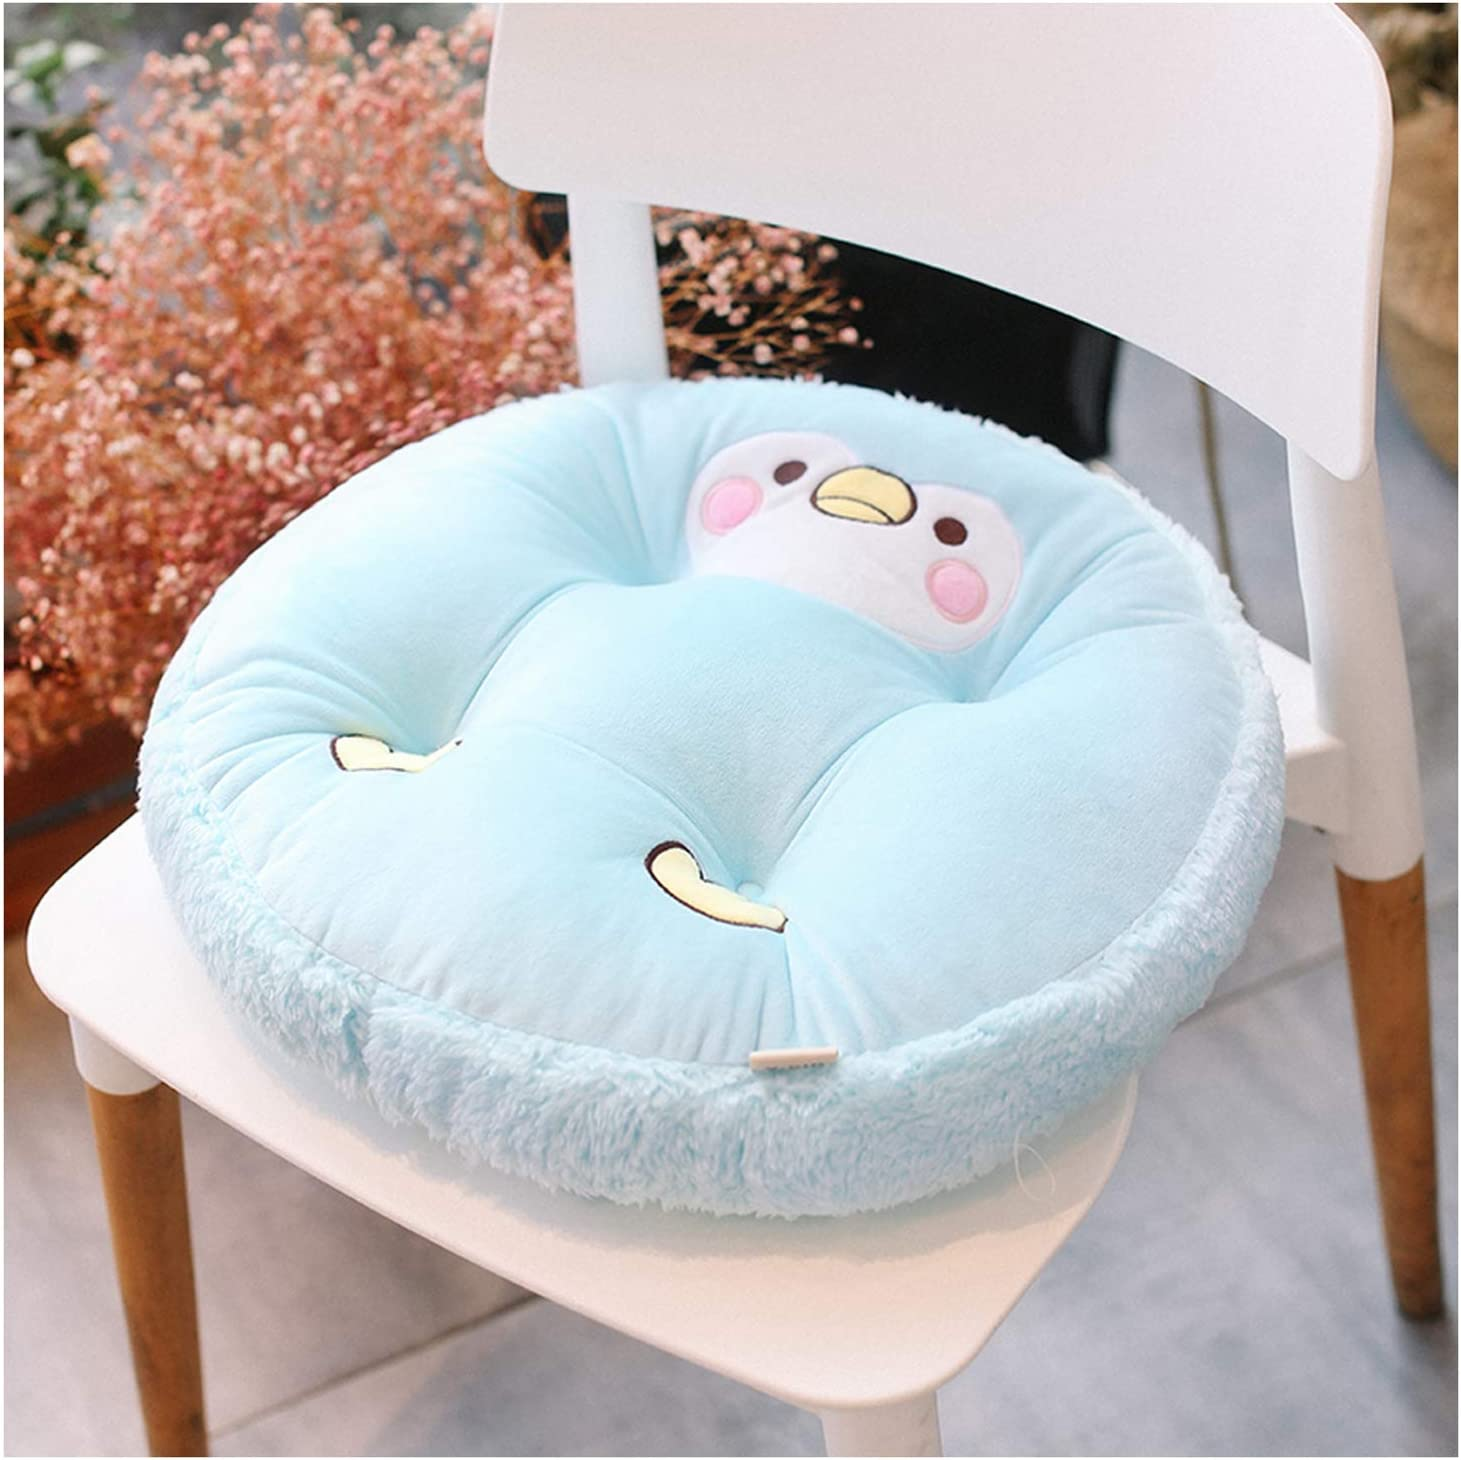 MKLP Kitchen Inventory cleanup selling sale Chair Pads Office Cushions and Comfortab 2021 spring summer new